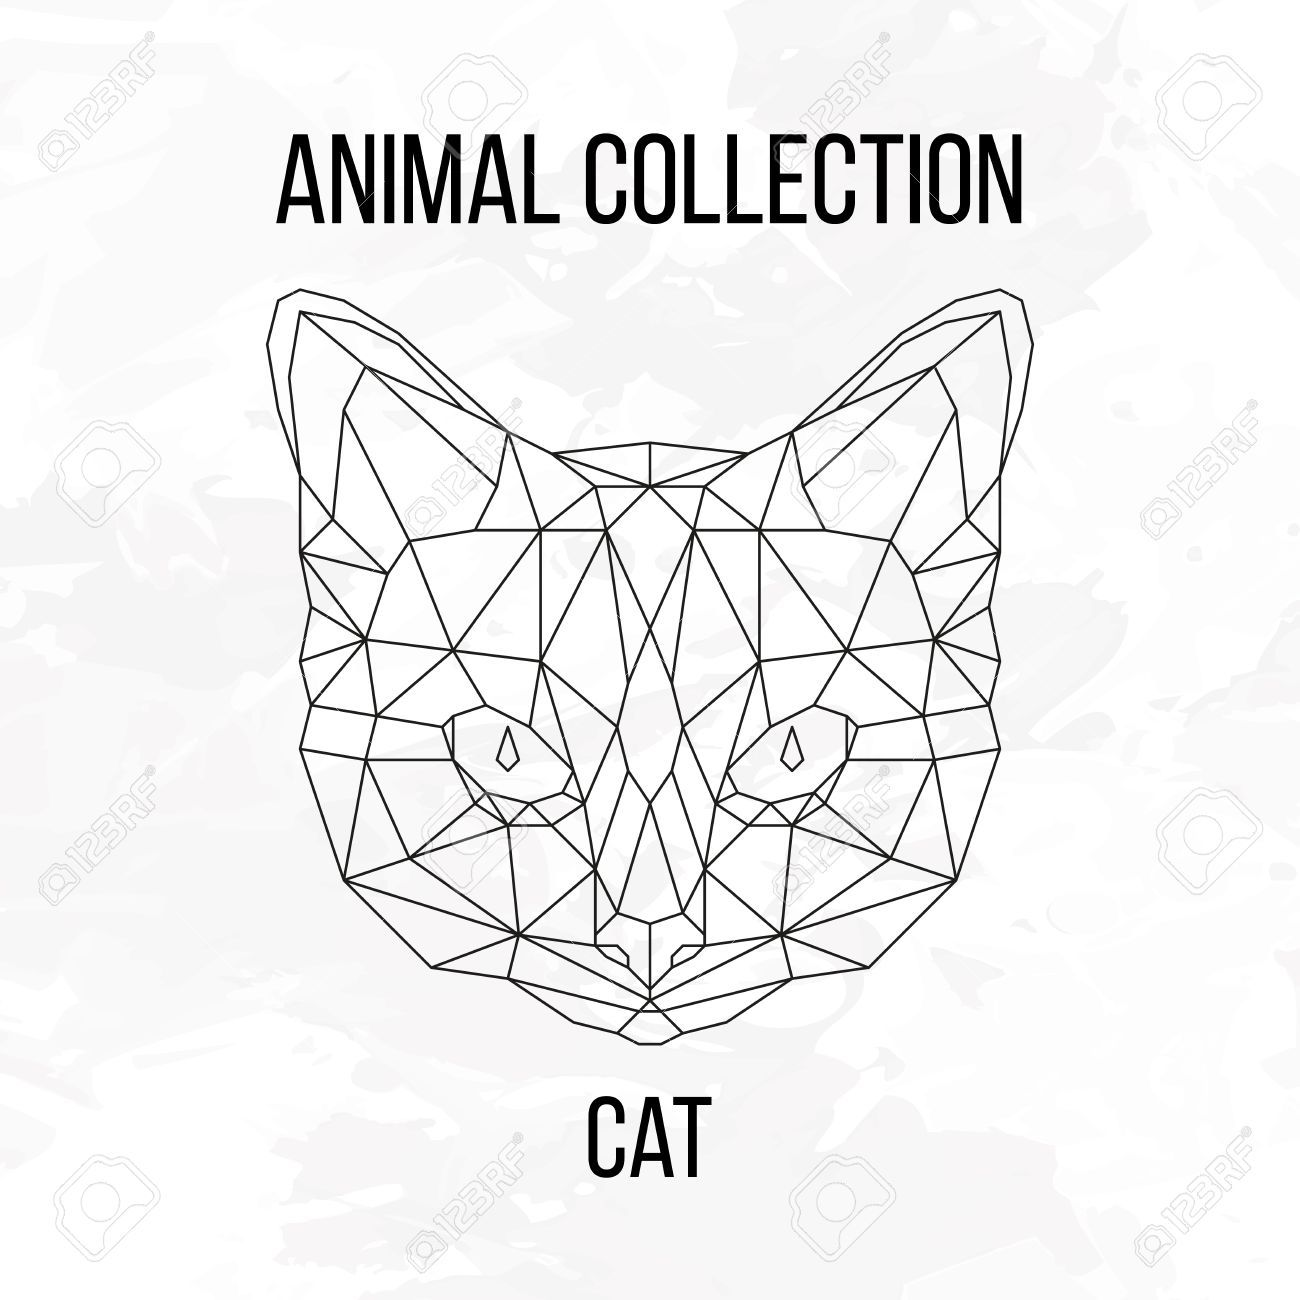 Geometric Animal Cat Head Background Royalty Free Cliparts Vectors And Stock Illustration Image 56015900 Geometric Cat Geometric Animals Geometric Drawing